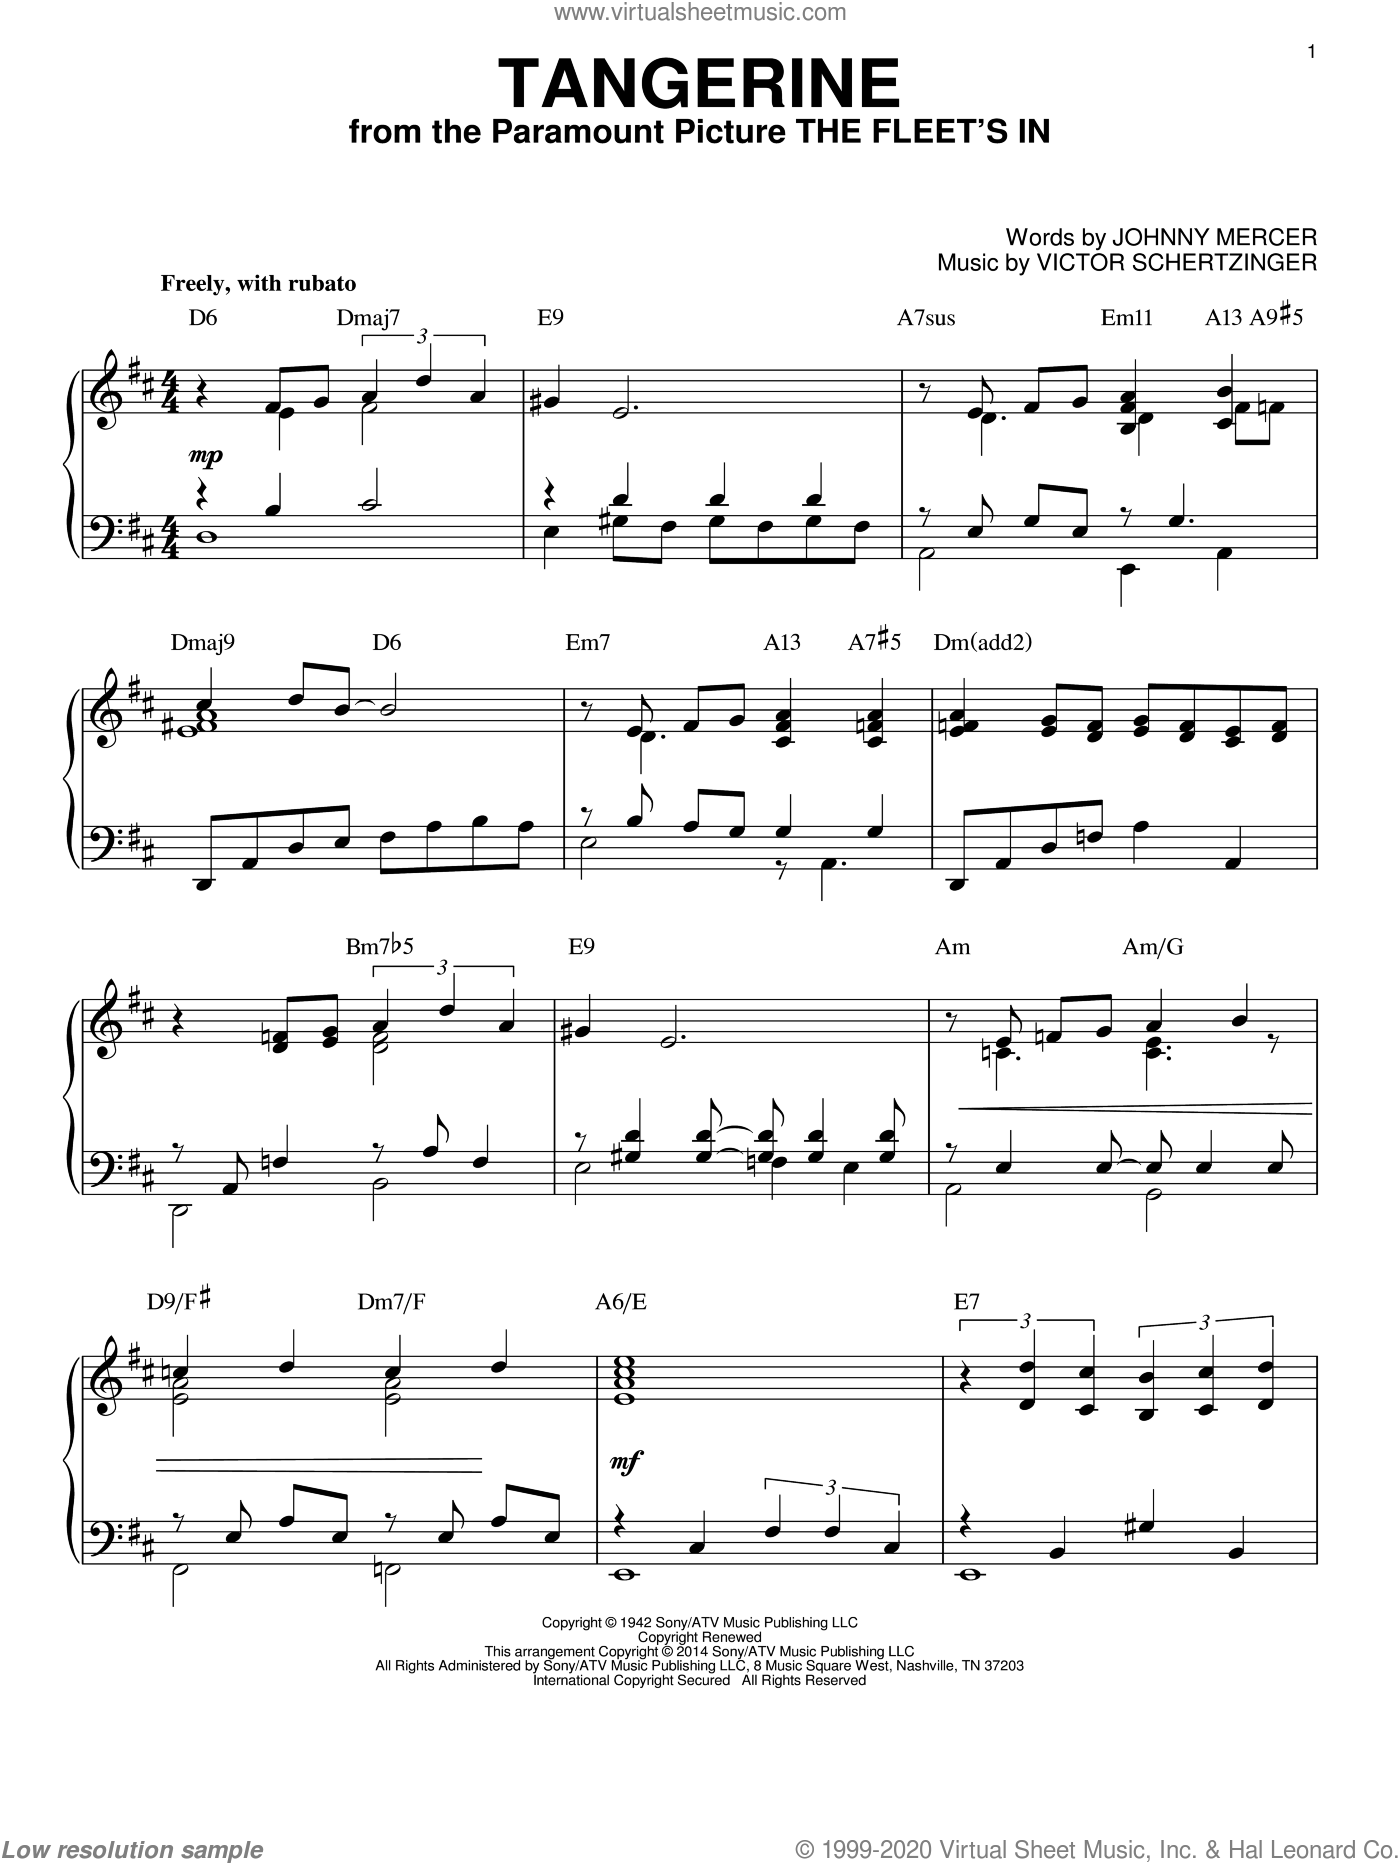 Tangerine [Jazz version] (arr. Brent Edstrom) sheet music for piano solo by Johnny Mercer and Victor Schertzinger, intermediate skill level